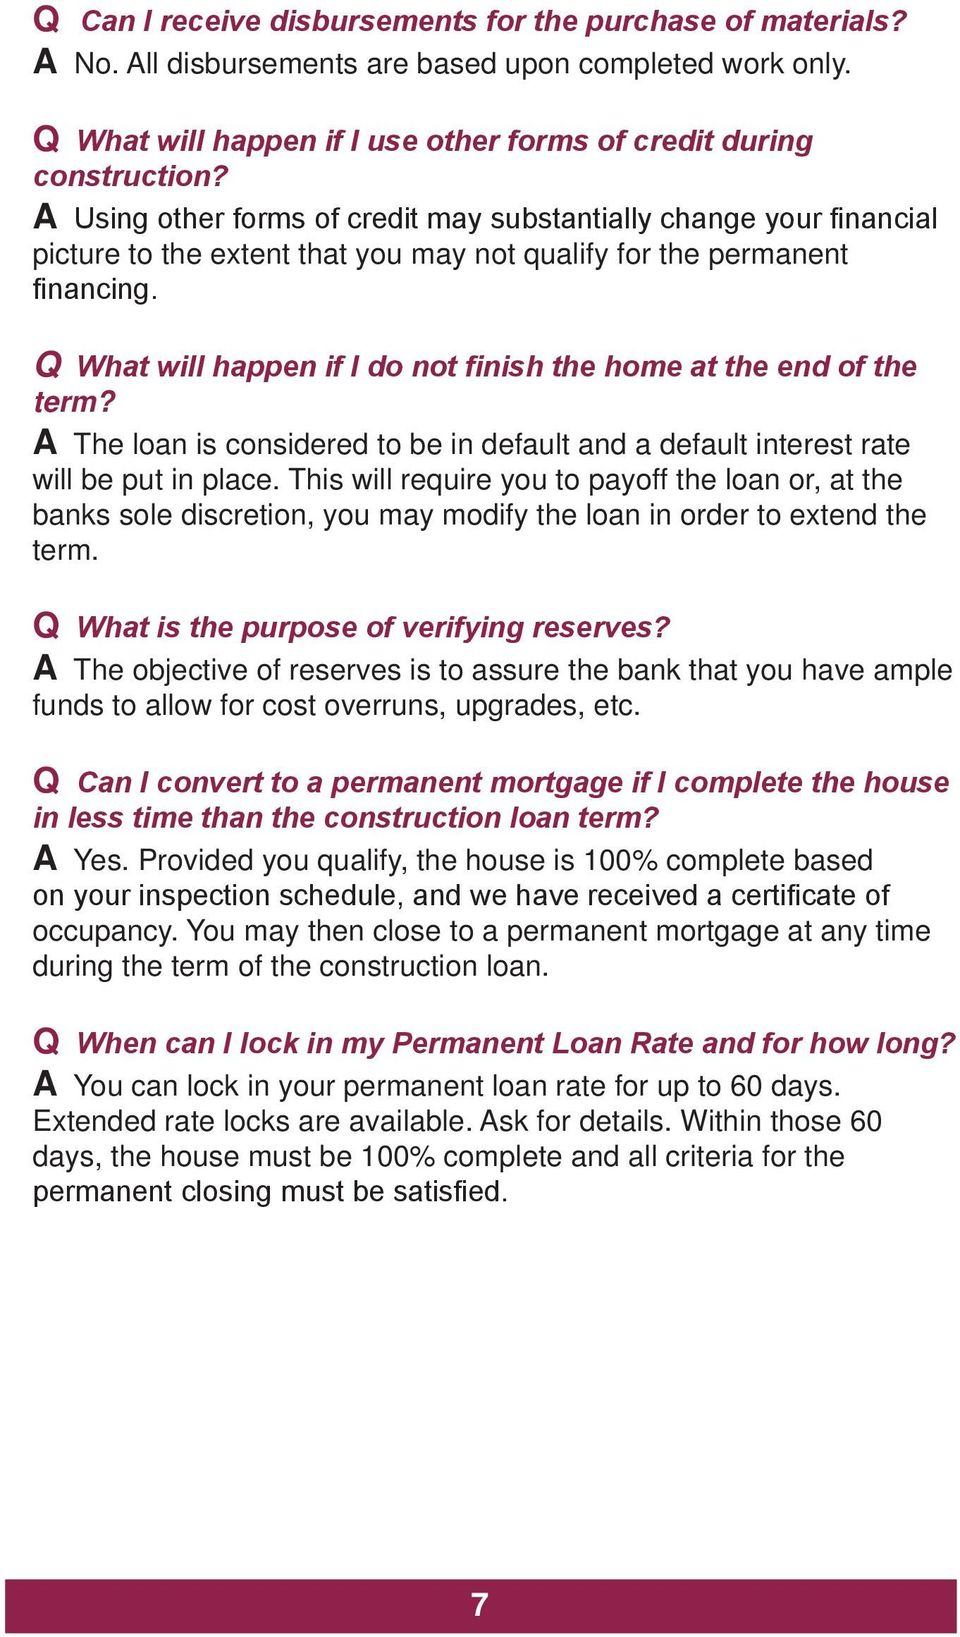 Q What will happen if I do not finish the home at the end of the term? A The loan is considered to be in default and a default interest rate will be put in place.